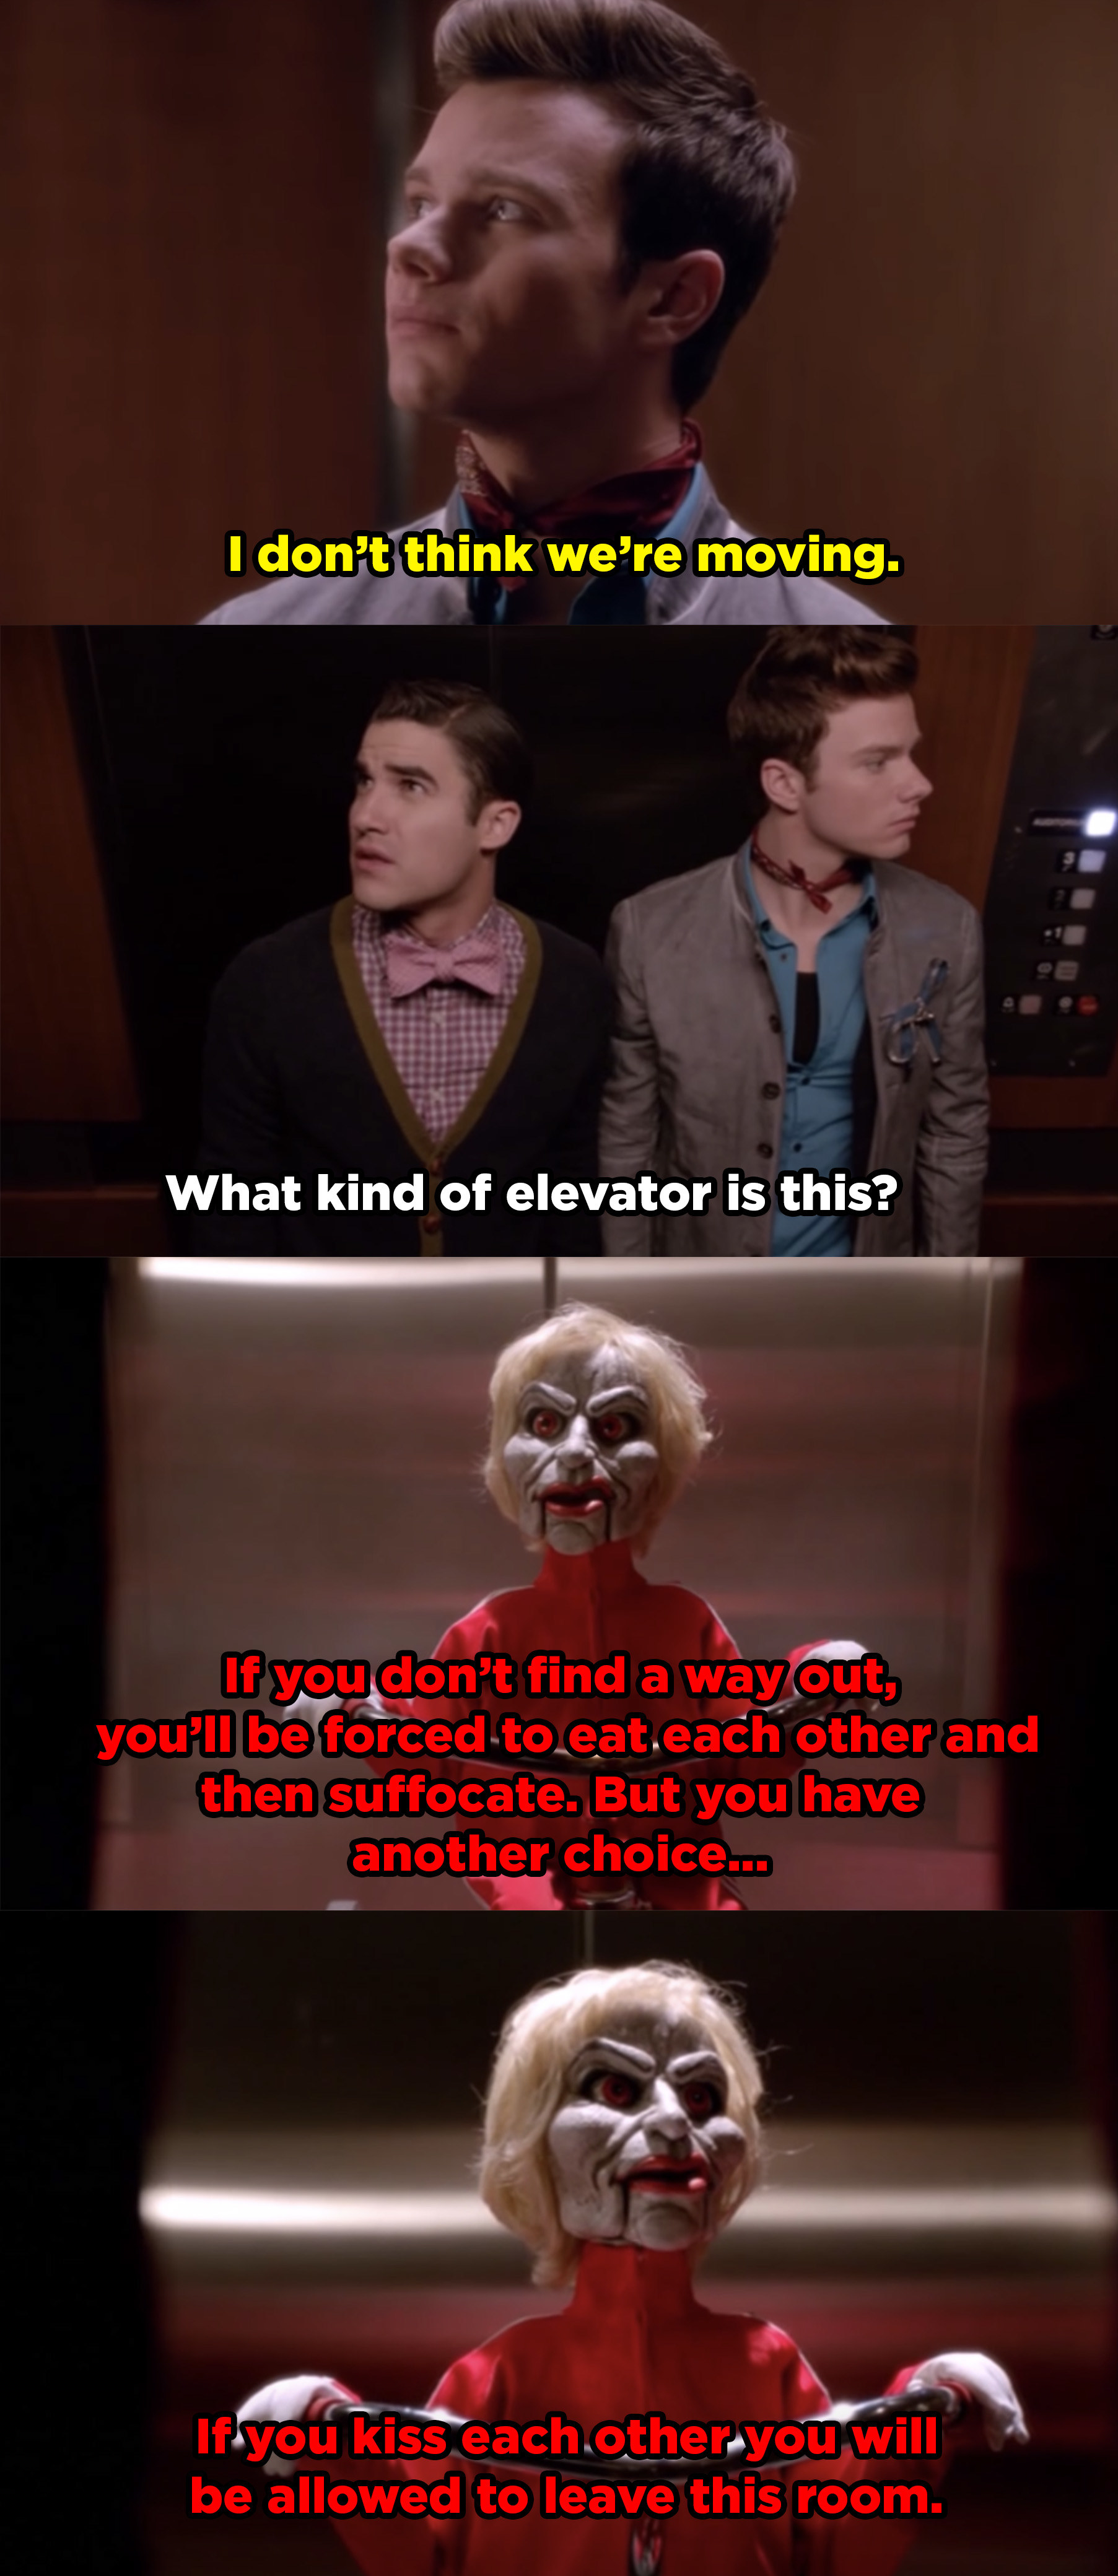 Blaine and Kurt trapped in an elevator. A small Sue puppet riding a bike (much like the Jigsaw from the Saw movies) rides into the elevator and tells them they have to kiss or else they won't be let out.